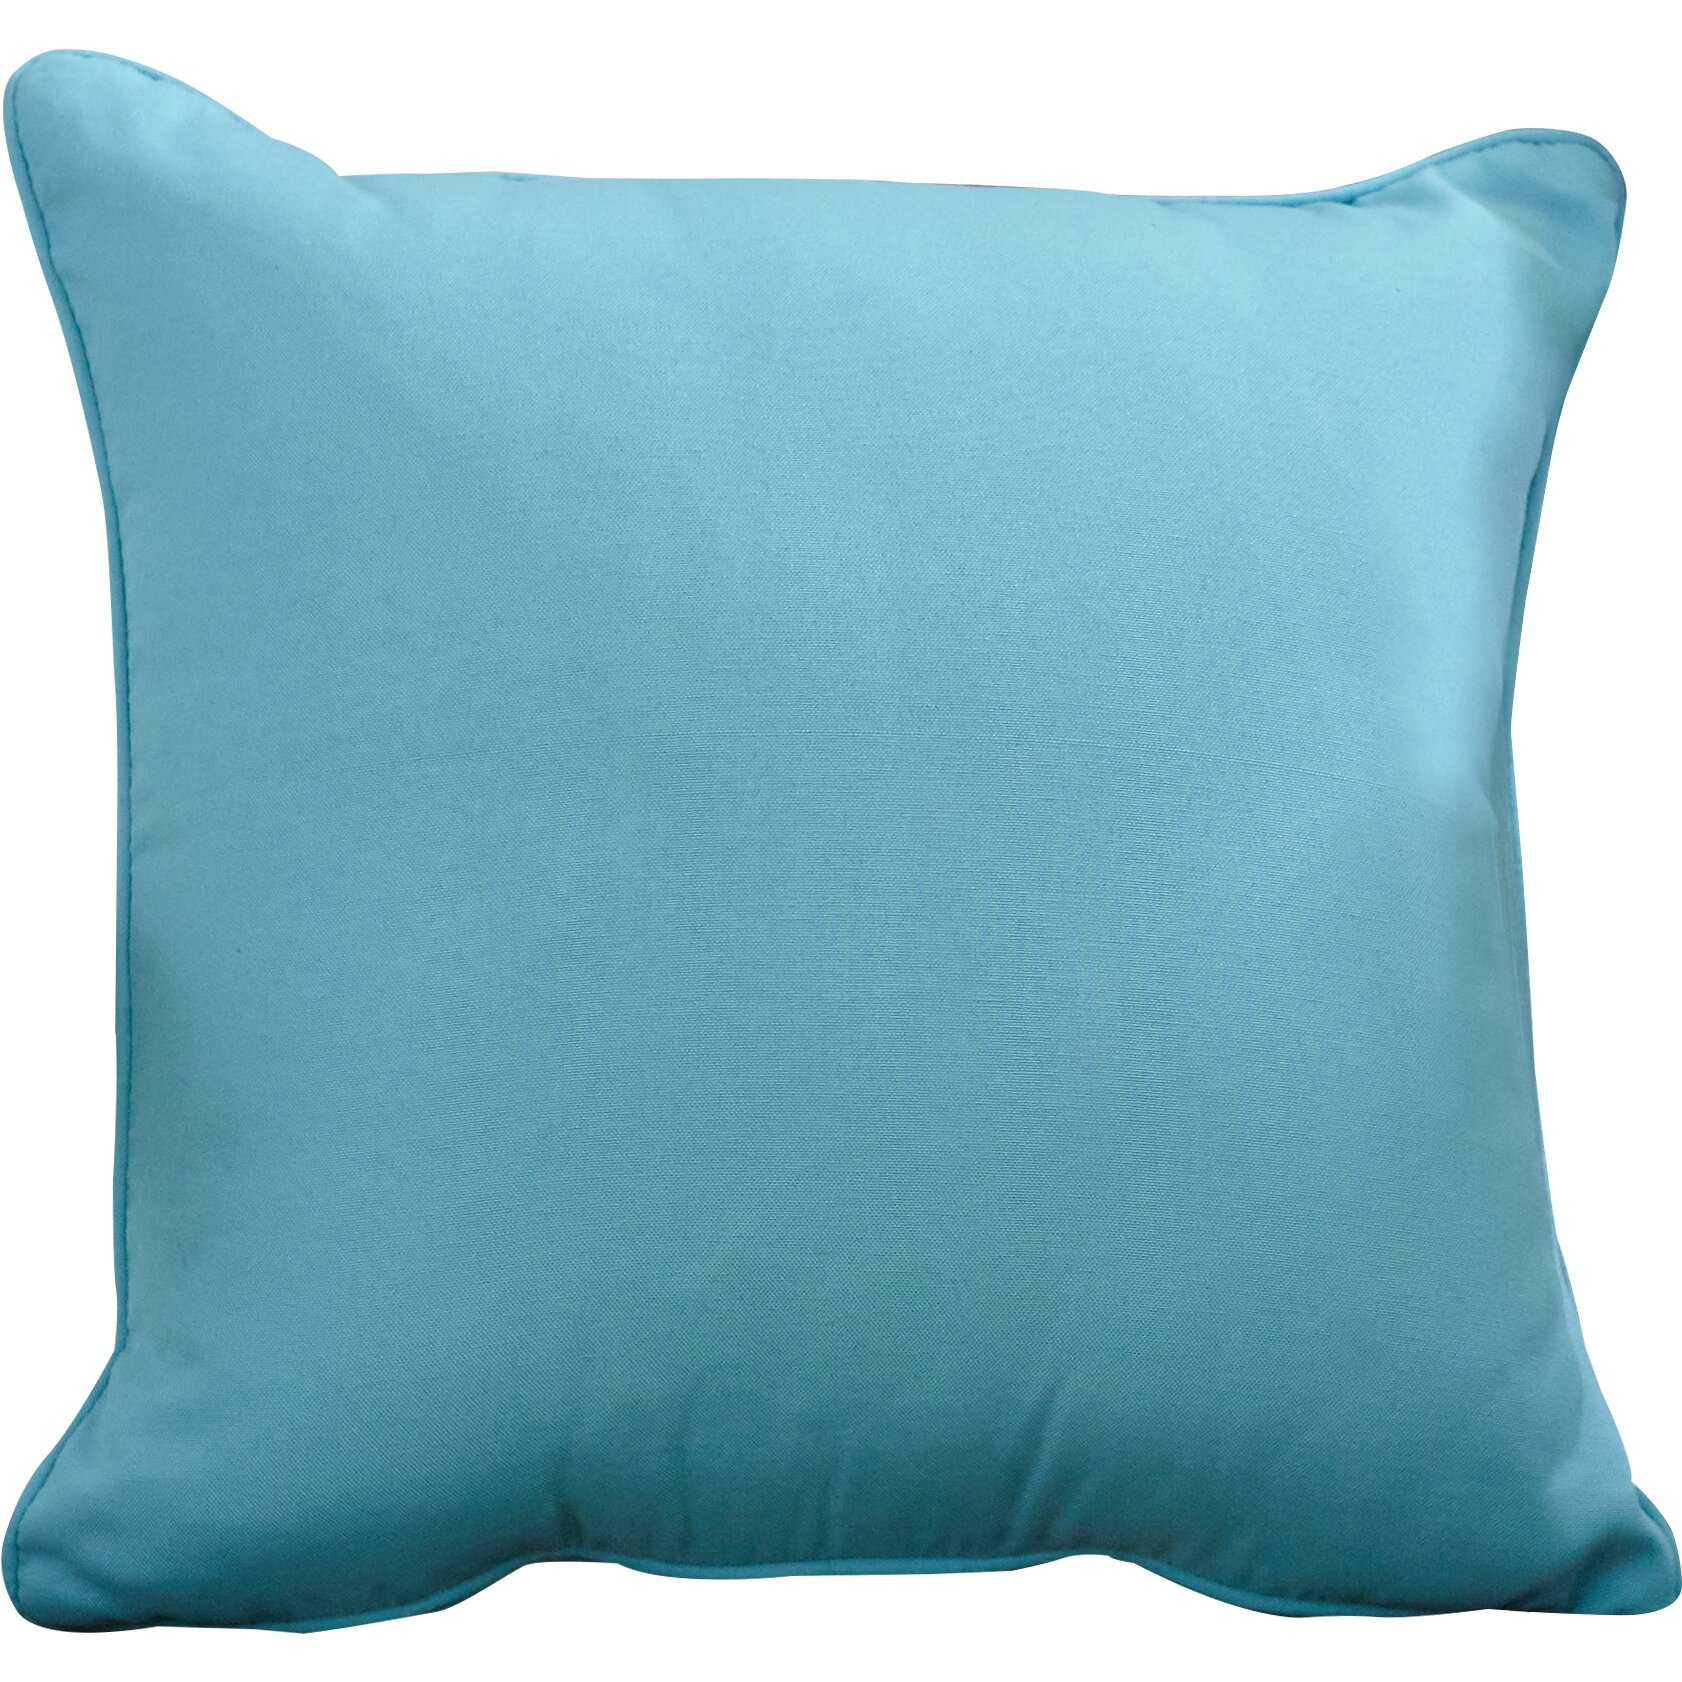 Wayfair Custom Outdoor Cushions Outdoor Solid Throw Pillow & Reviews Wayfair